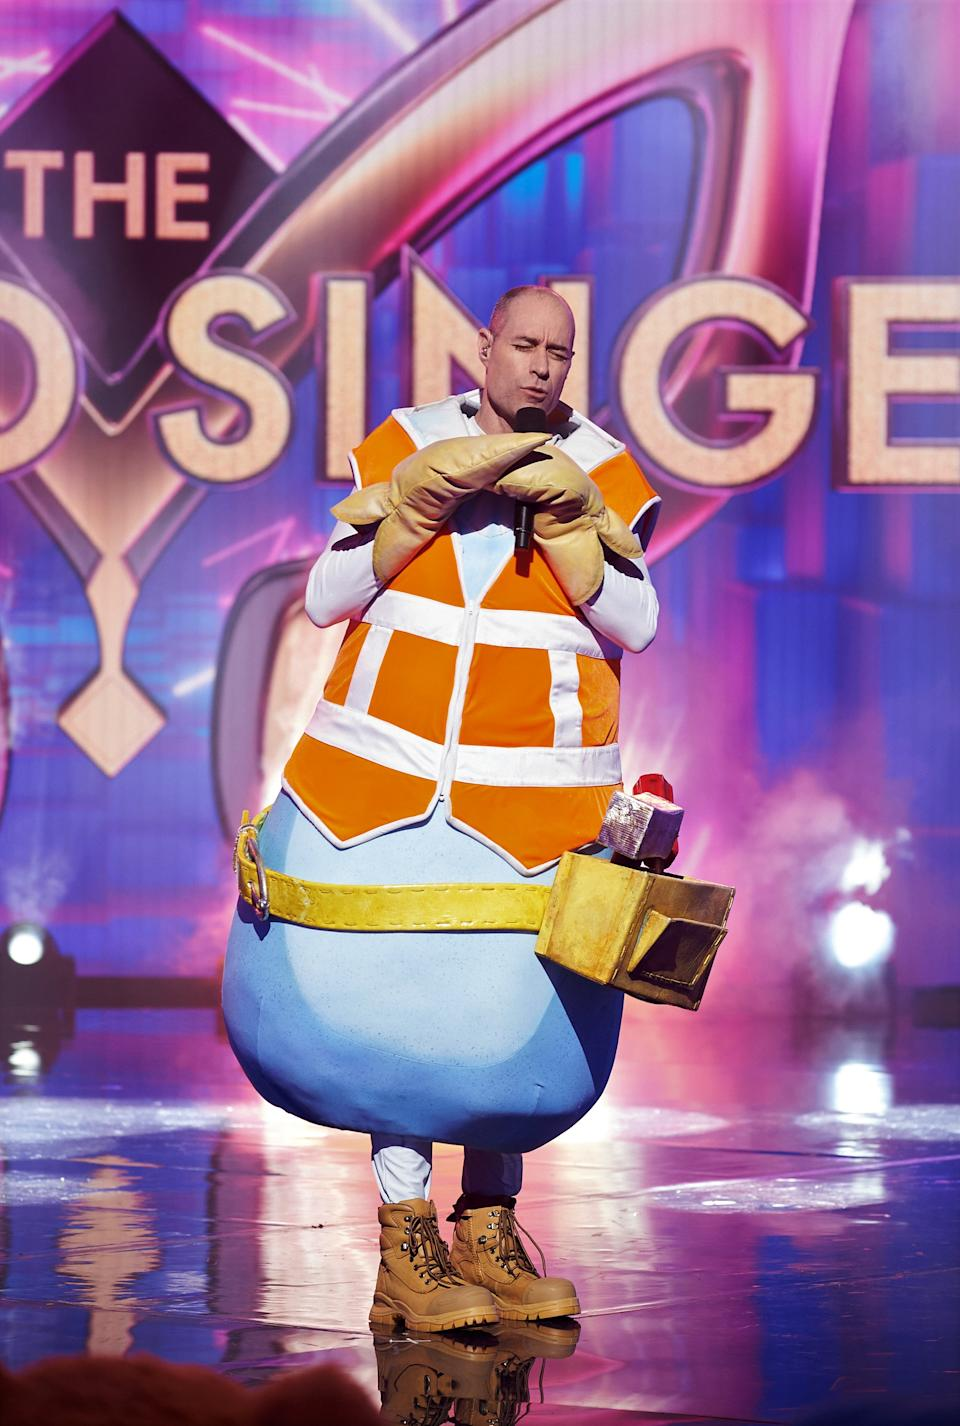 Michael Bevan as the Hammerhead on The Masked Singer